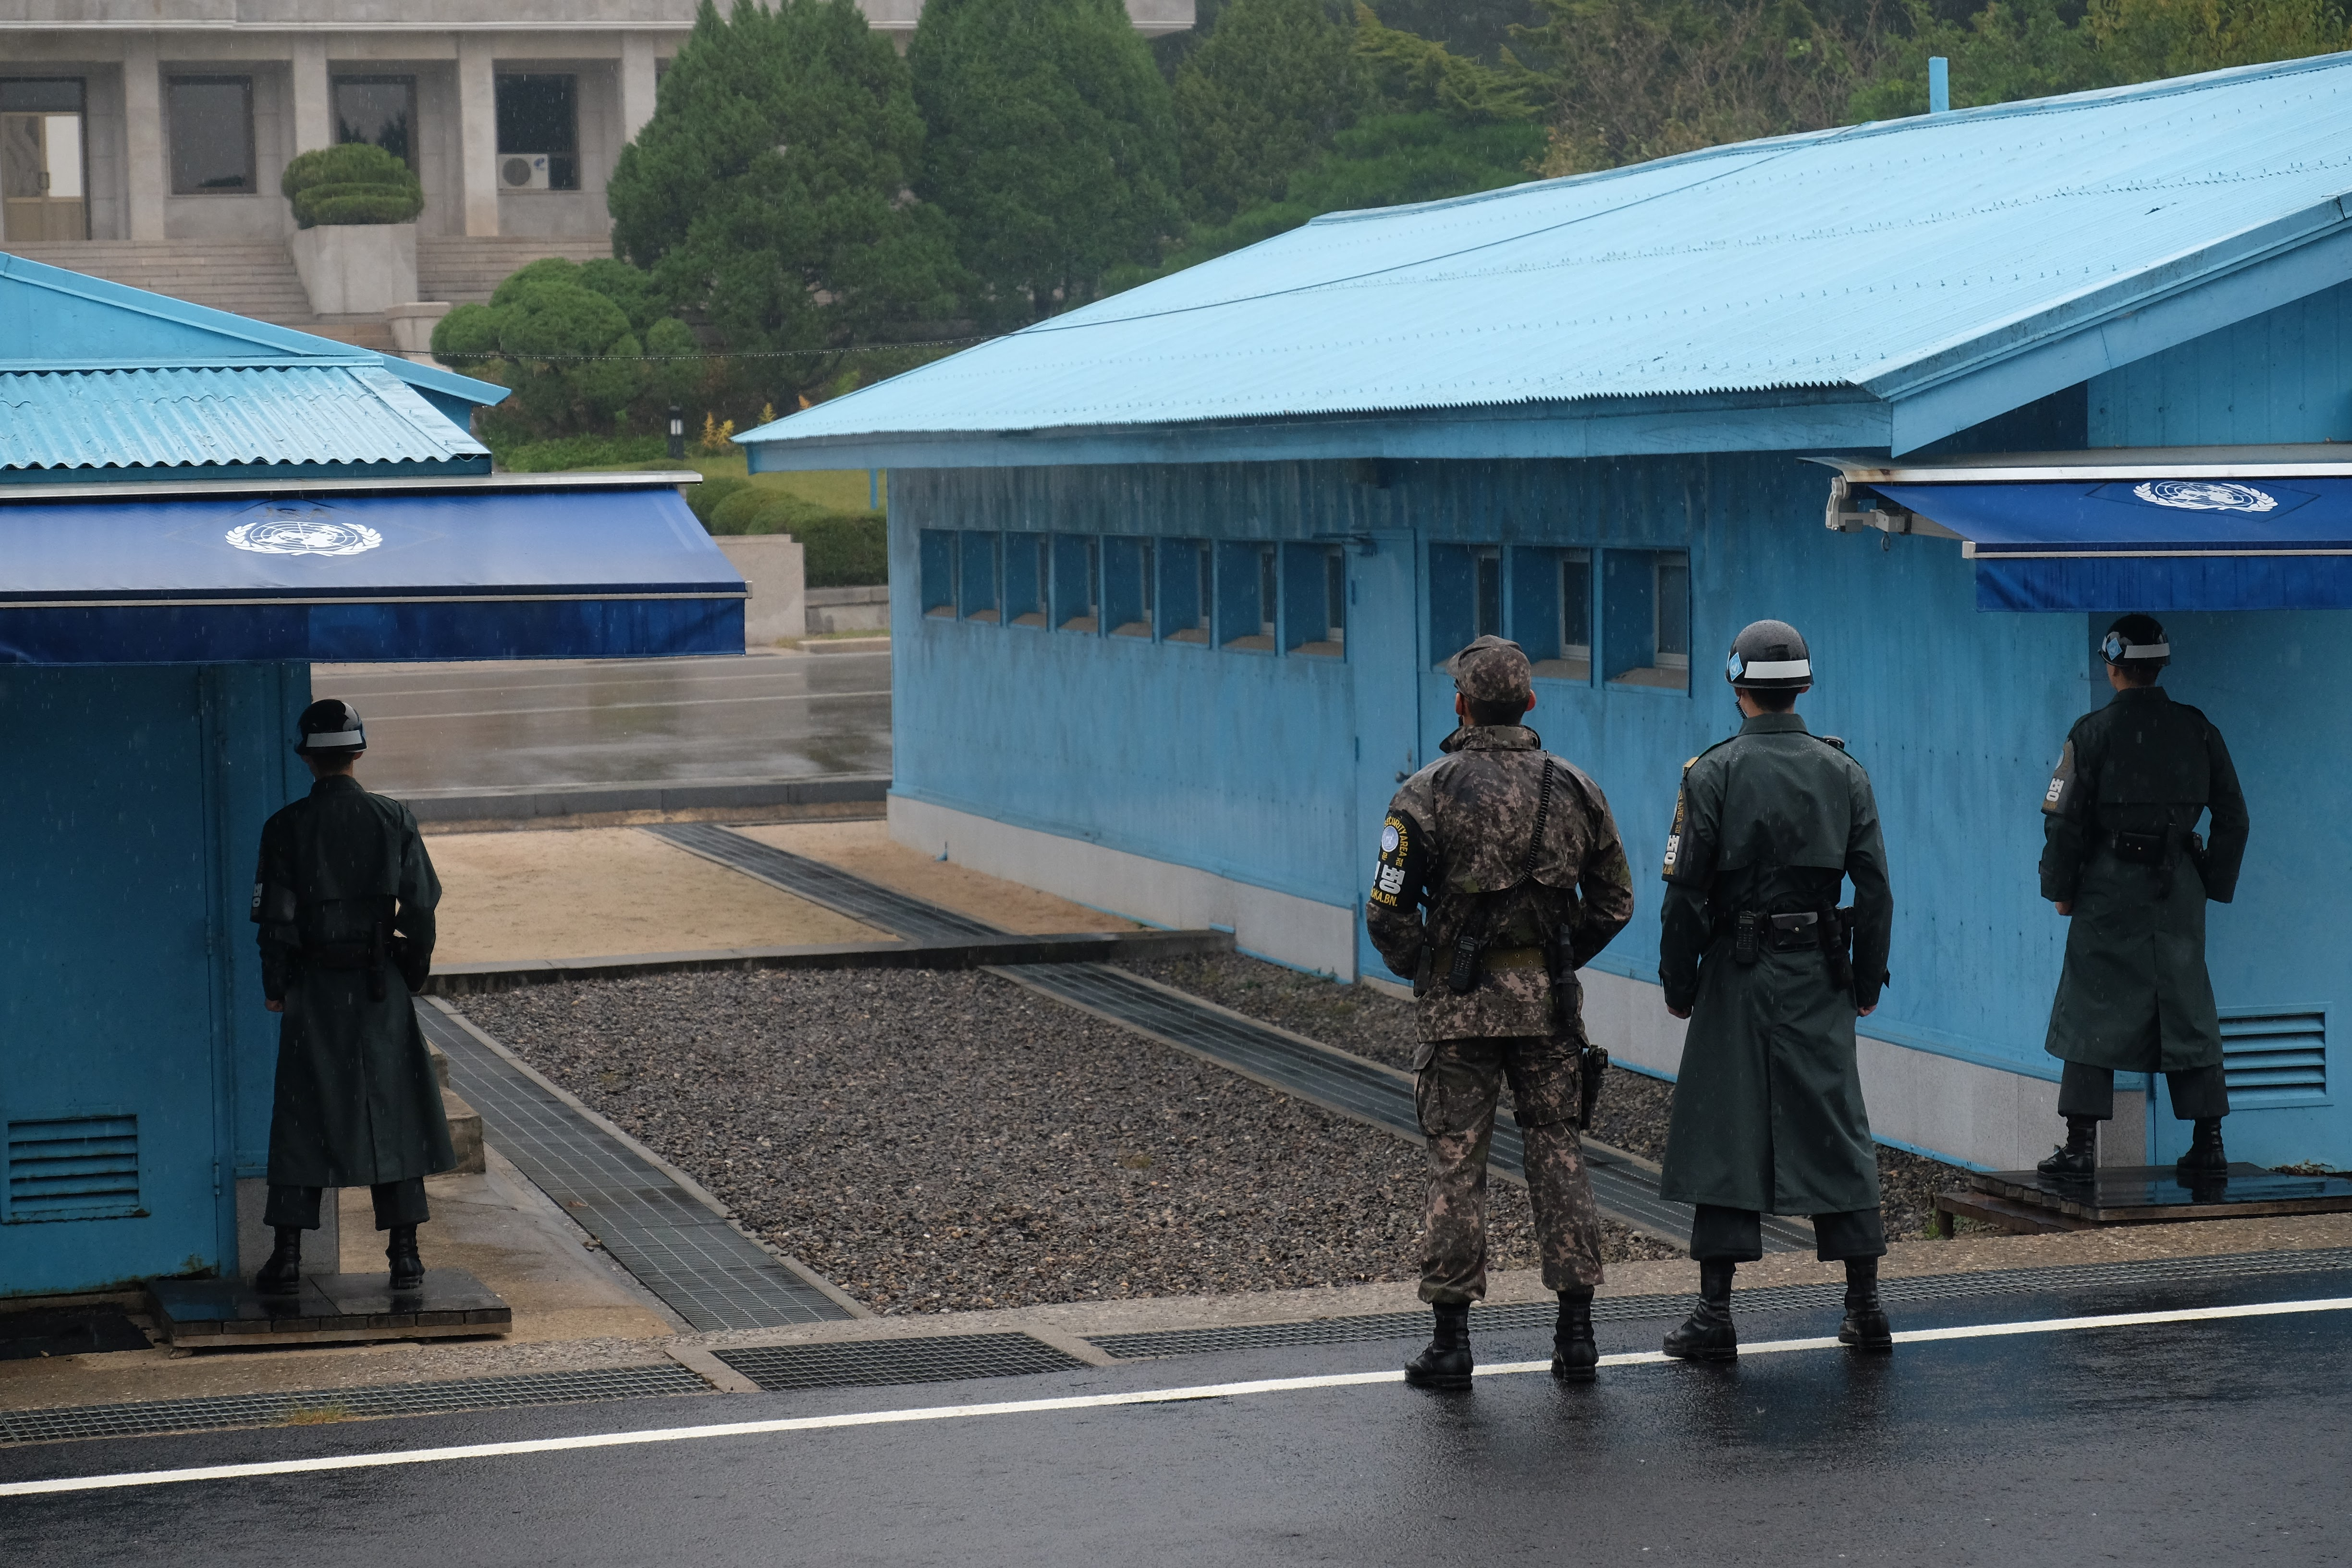 relation between north and south korea Between 2009 and the end of 2016, relations between the united states and south korea (known officially as the republic of korea, or rok) arguably were at their most robust since the formation of the us-rok alliance in 1953.